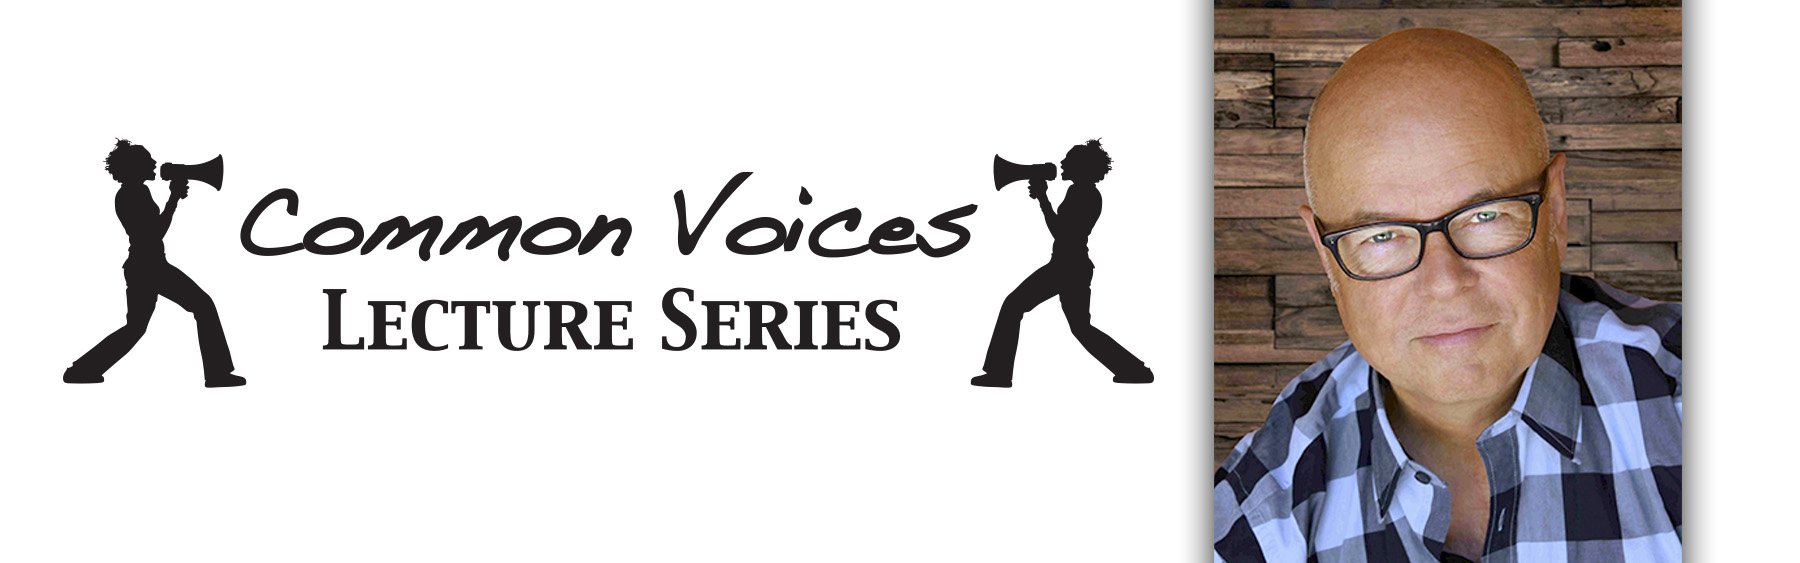 Common Voices Lecture Series with Terry O'Reilly